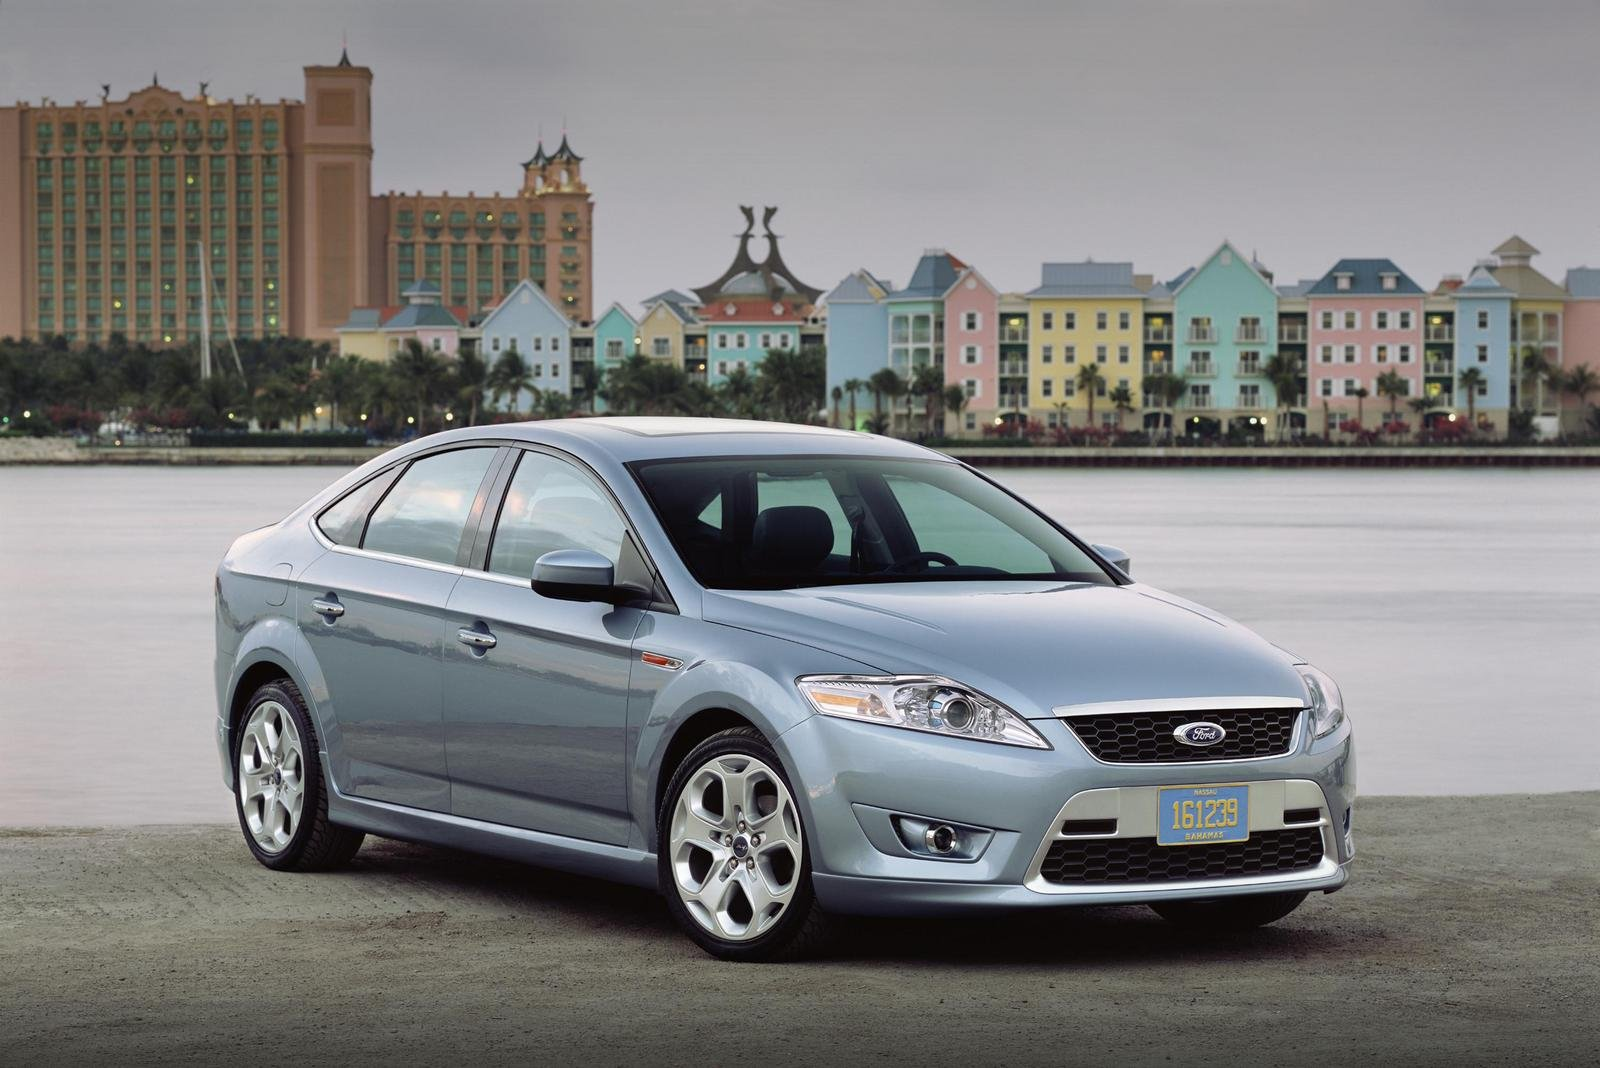 2007 ford mondeo review top speed. Black Bedroom Furniture Sets. Home Design Ideas